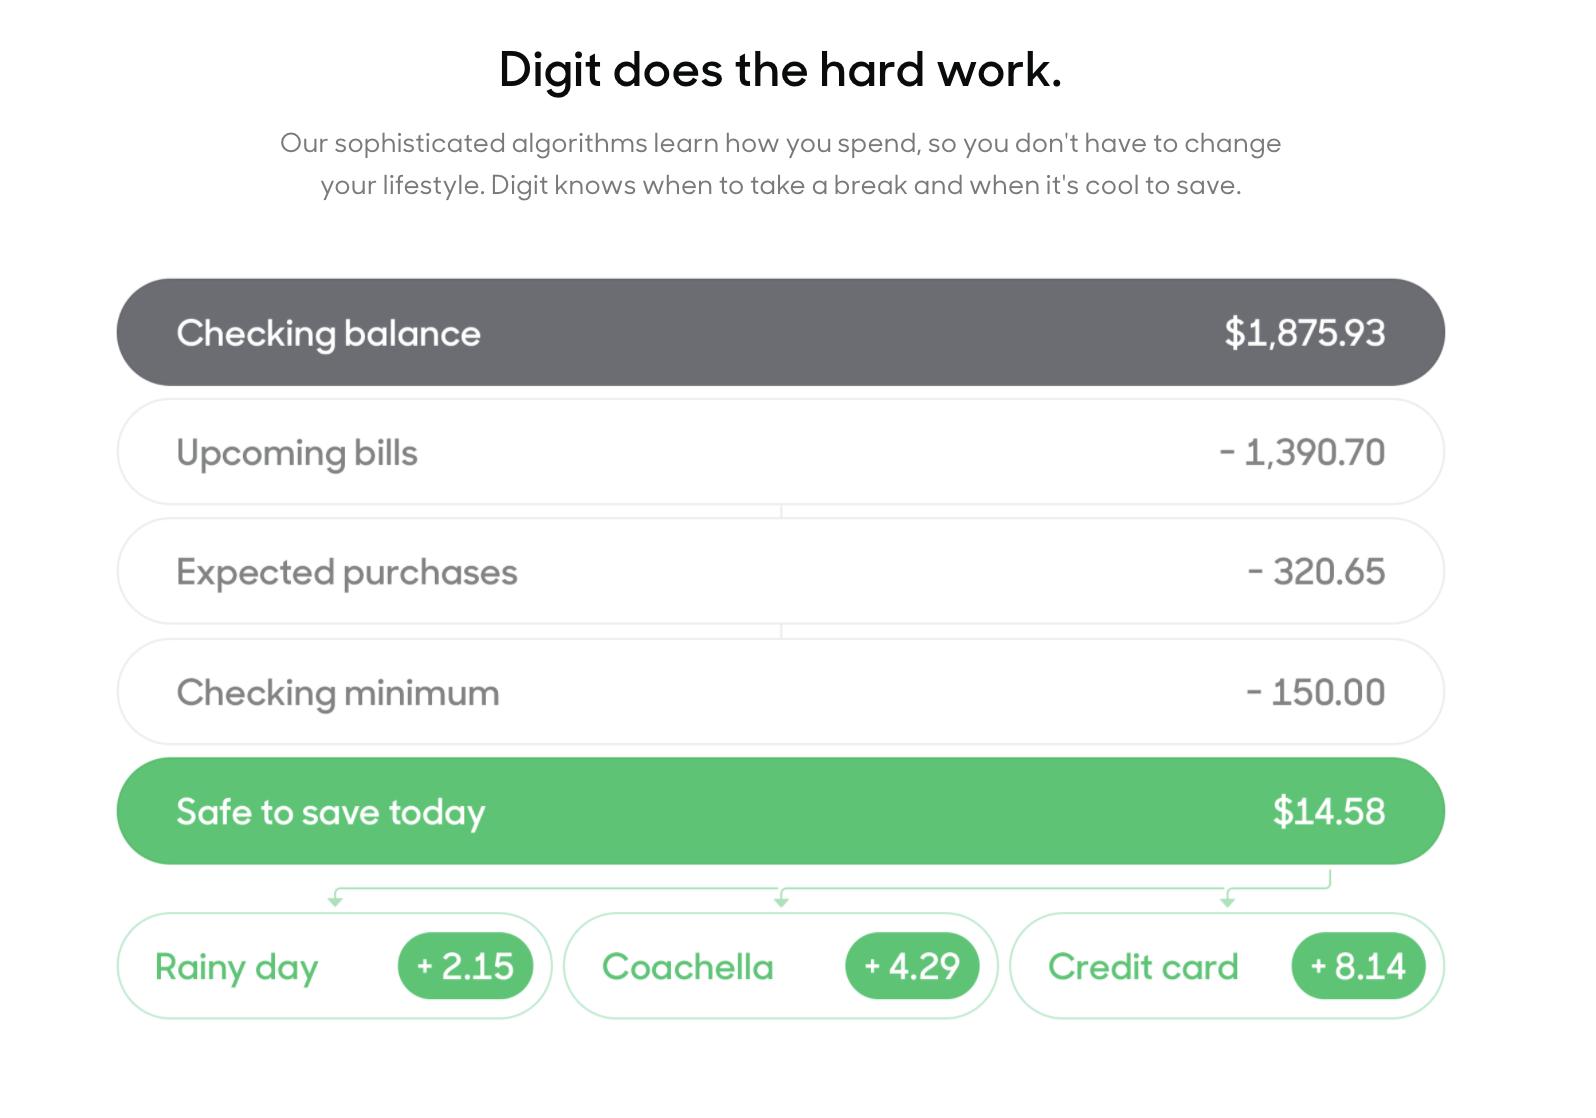 A page from the Digit website showing how Digit calculates an appropriate savings amount based on your account balance, upcoming bills, expected purchases, and account minimum